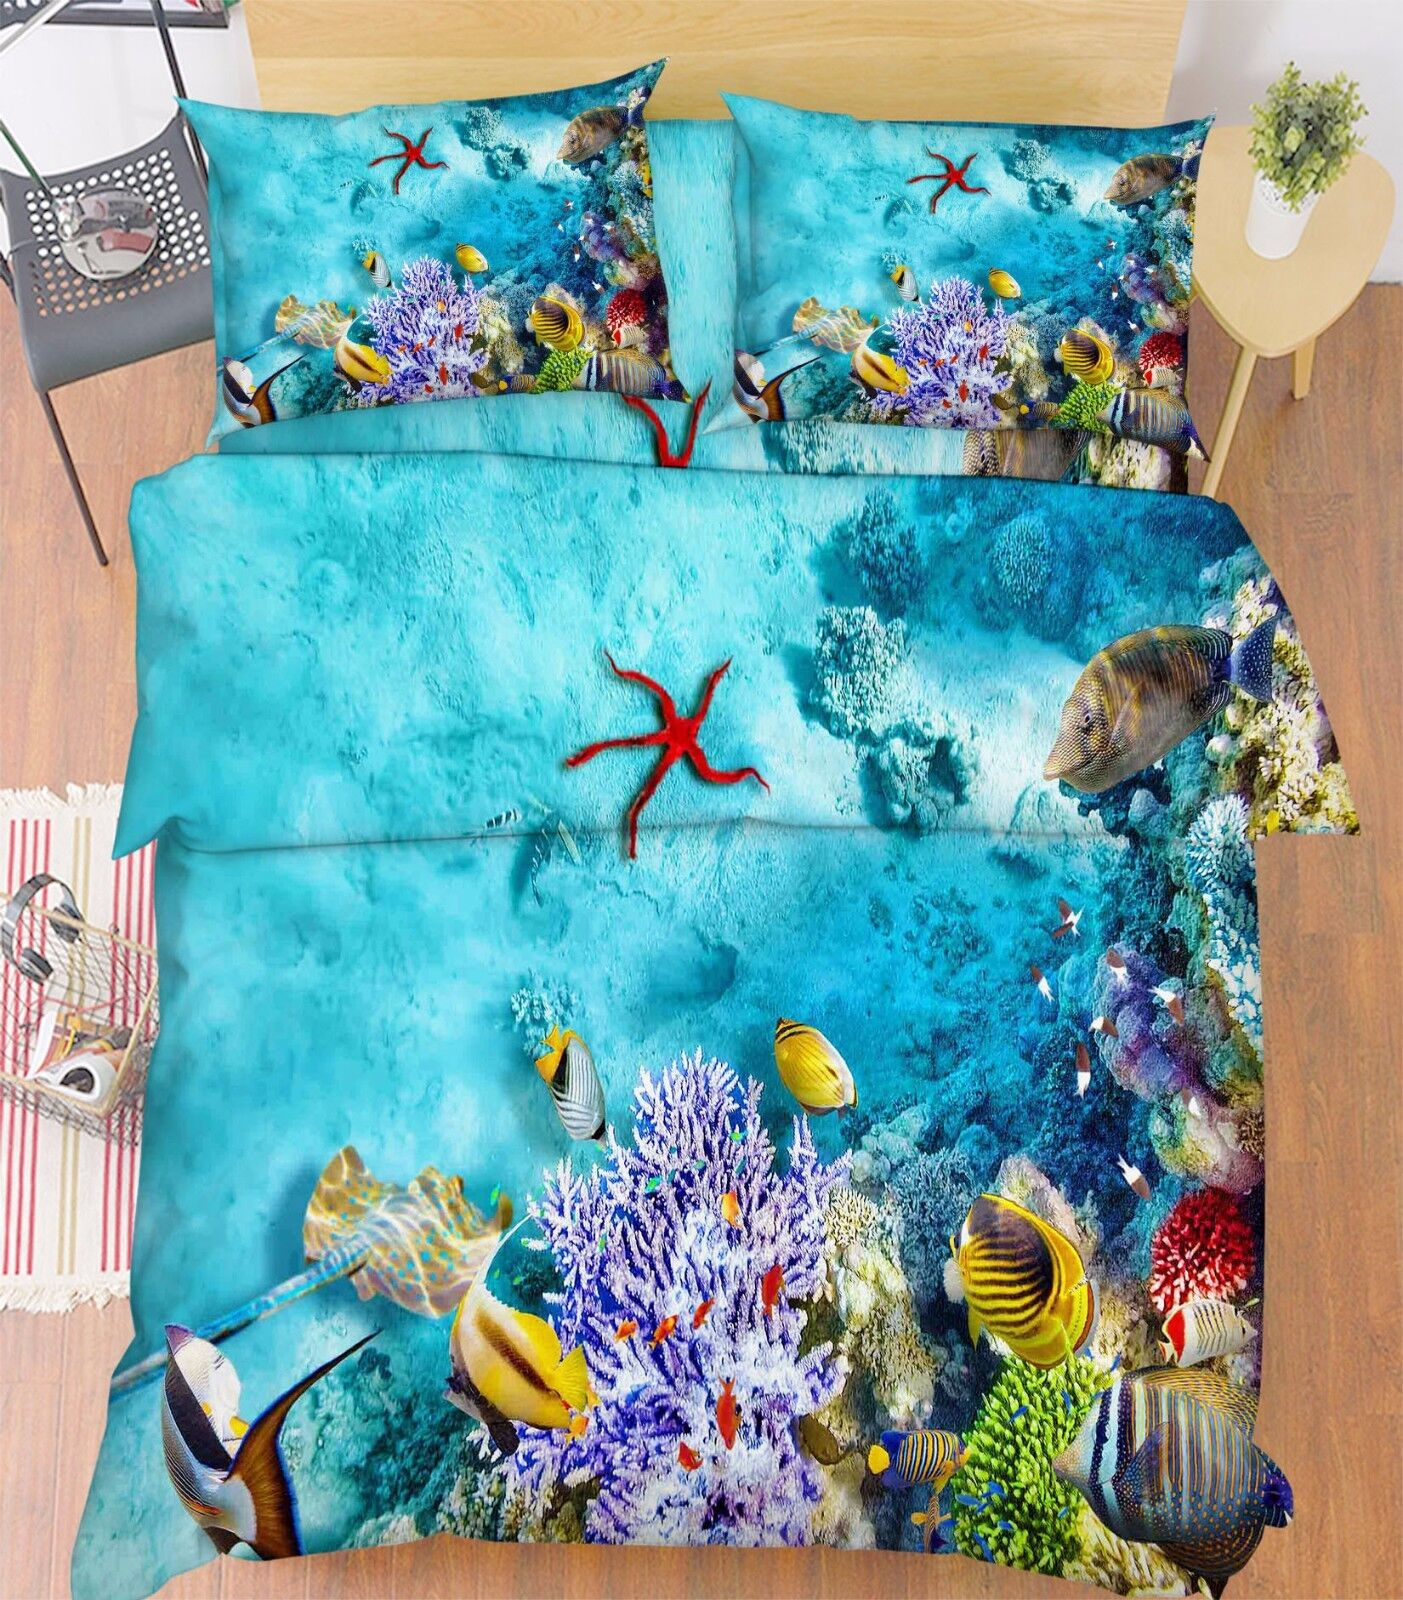 3D Starfish Fishs 5 Bed Pillowcases Quilt Duvet Cover Set Single Queen King AU